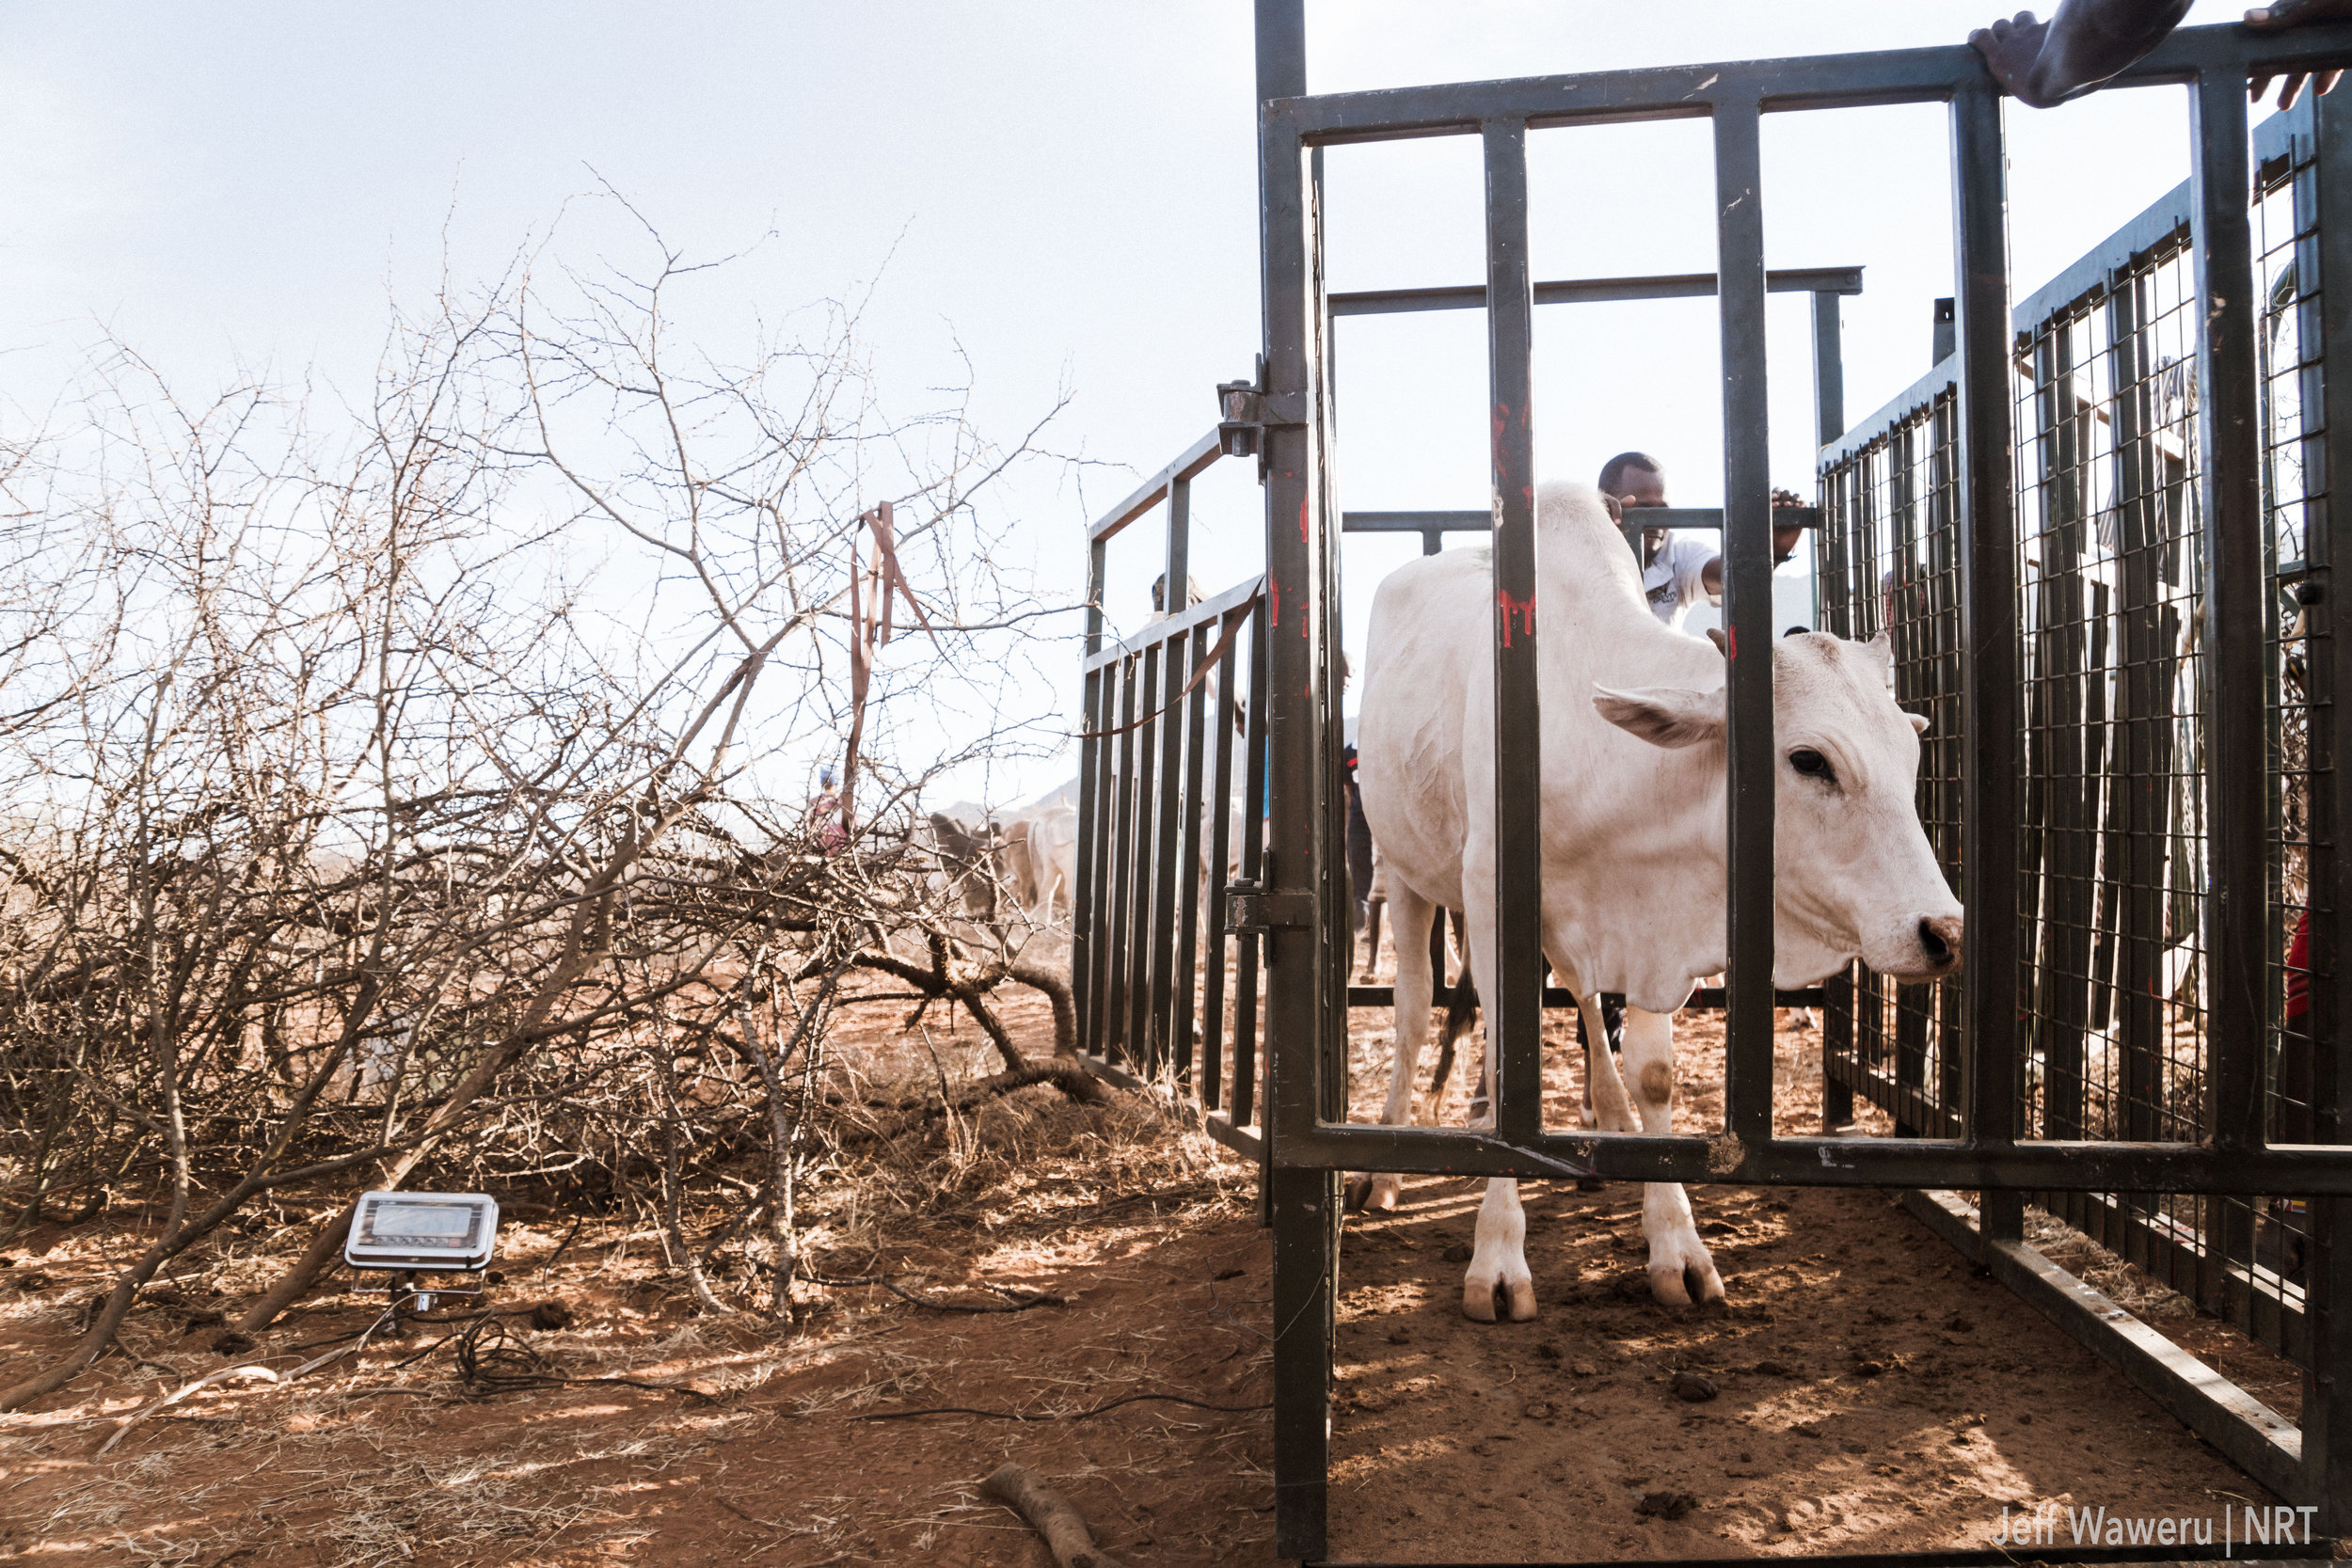 Cattle were microchipped and each weighed in a mobile weighing scale